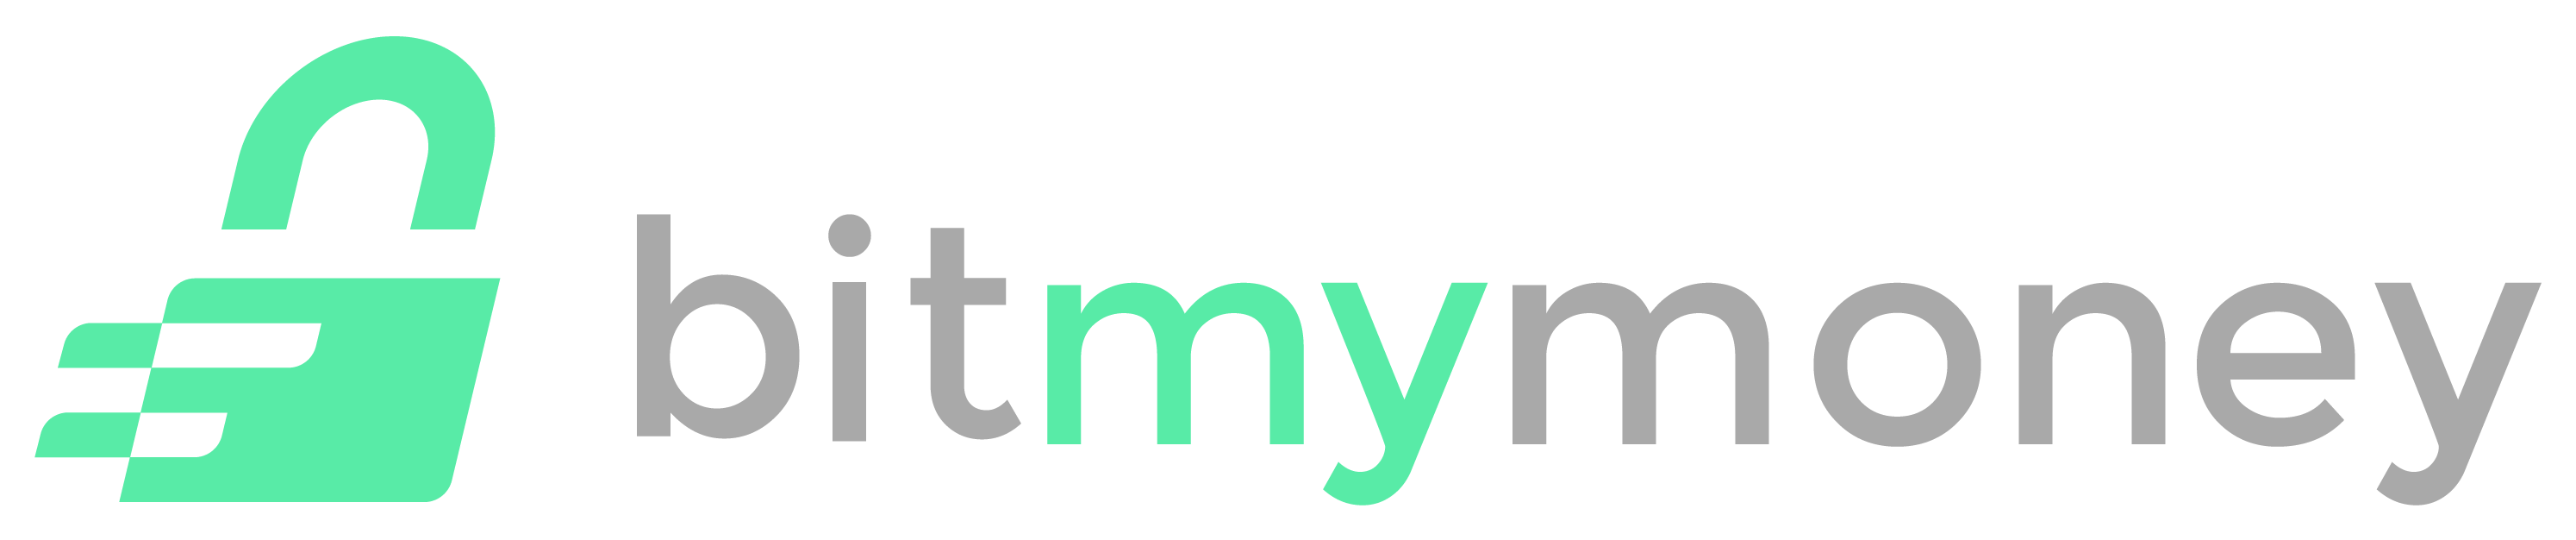 logo-bitmymoney